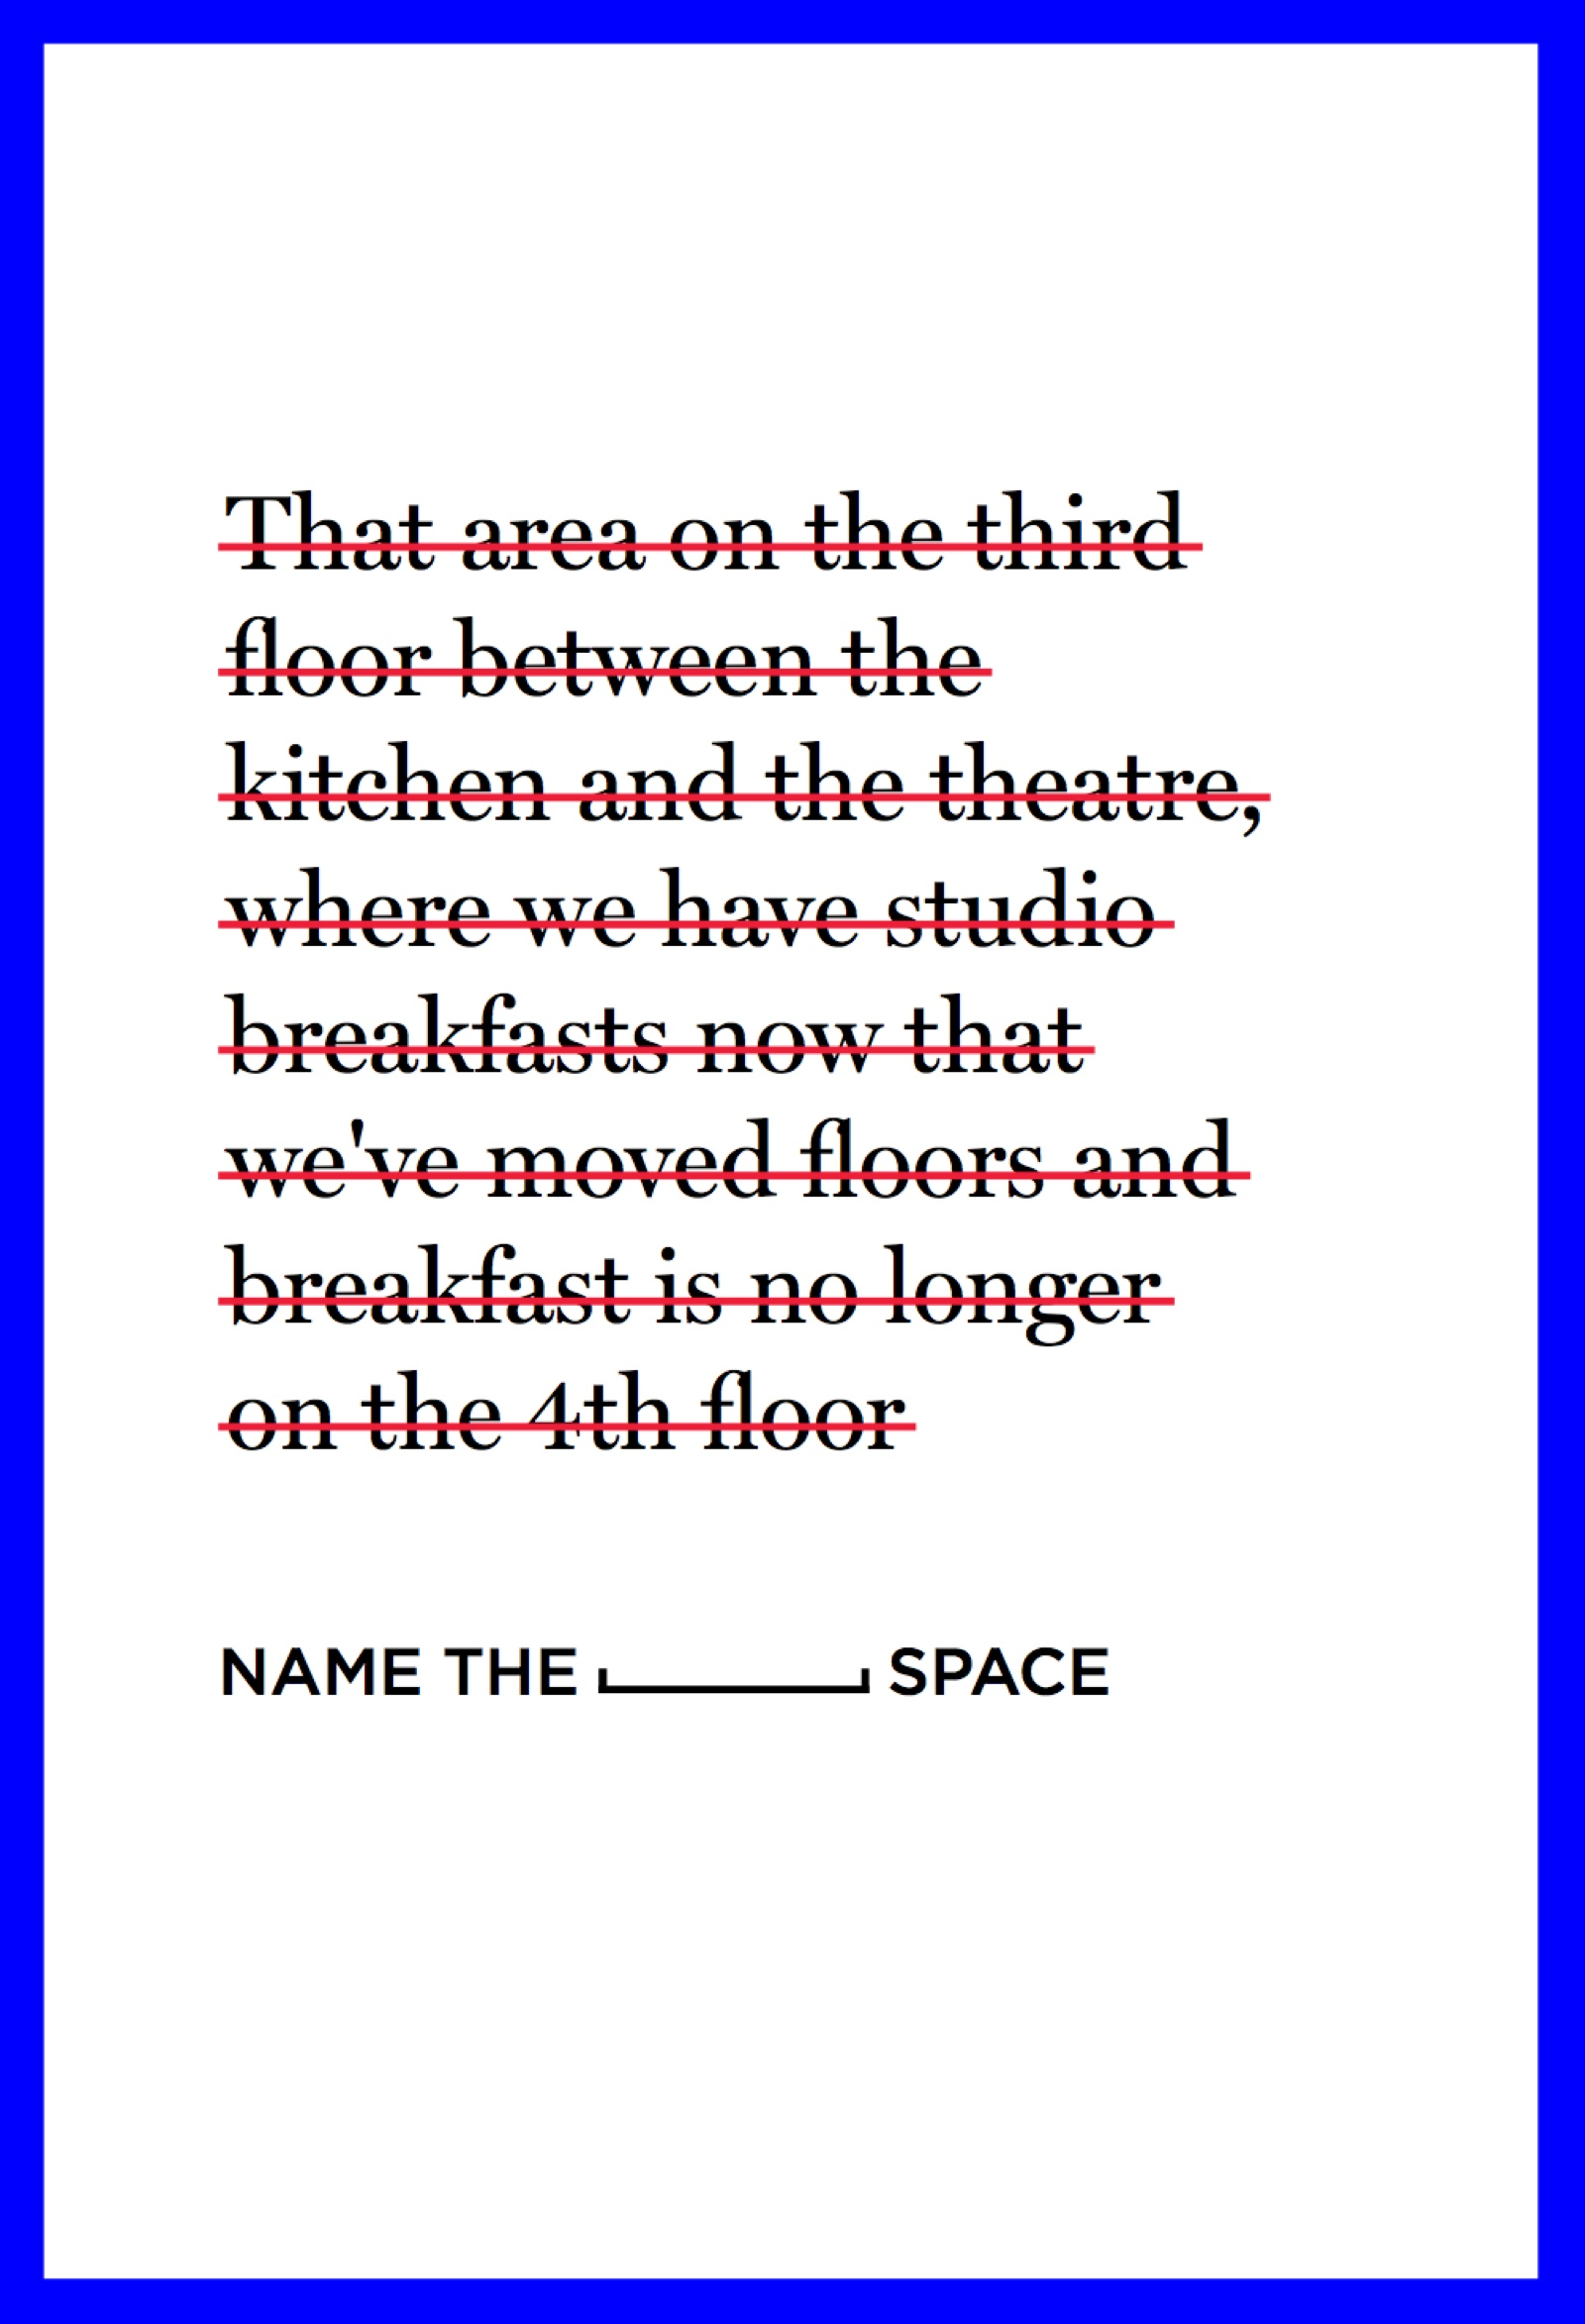 poster-namethespace